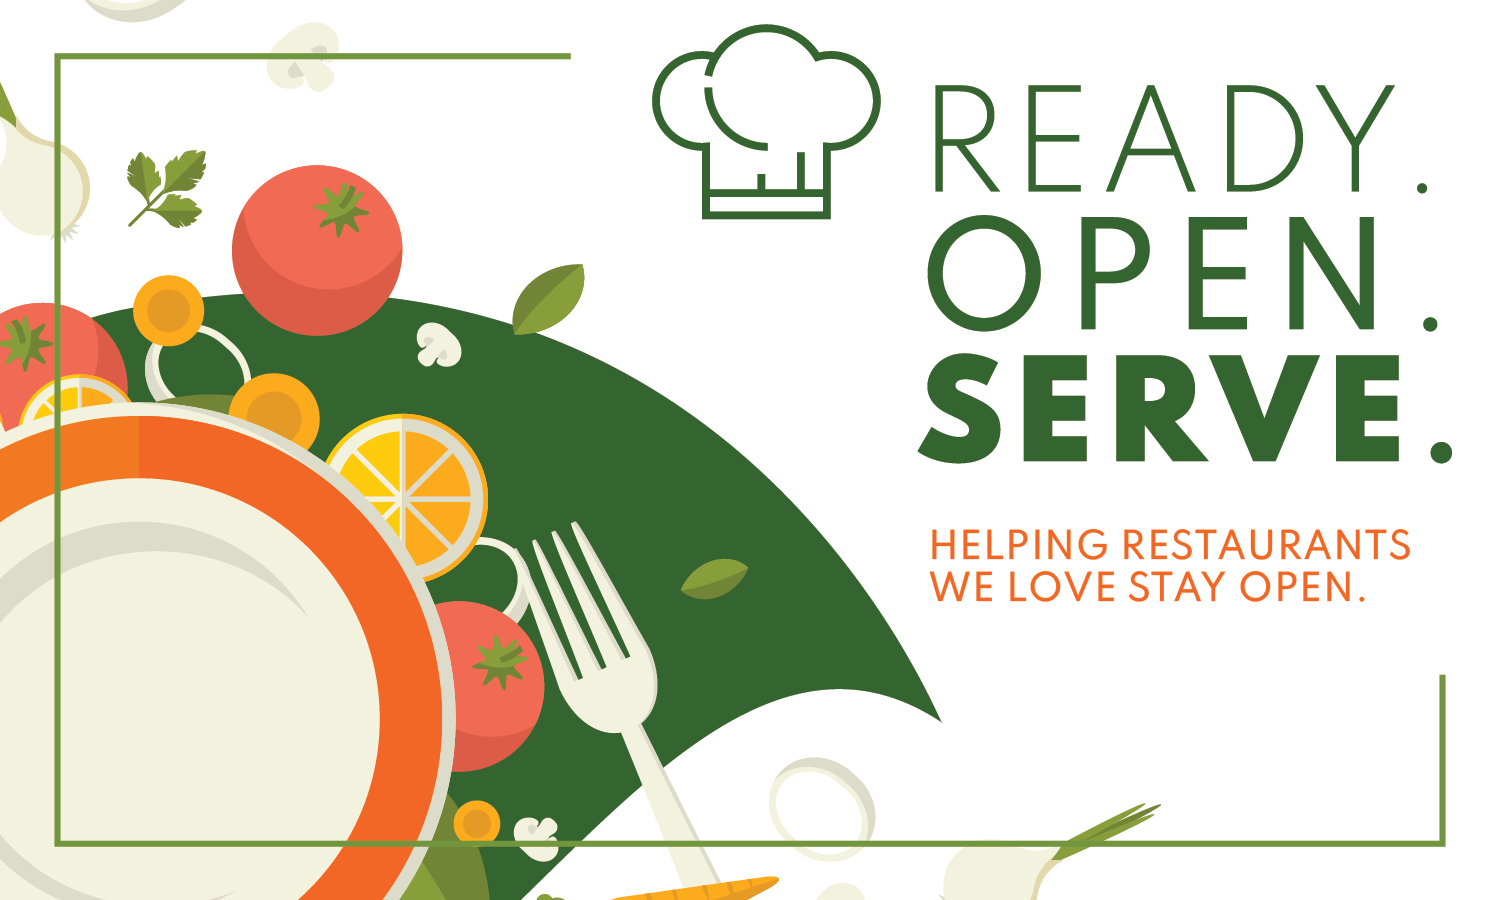 Ready. Open. Serve. A new restaurant support program in Los Angeles.